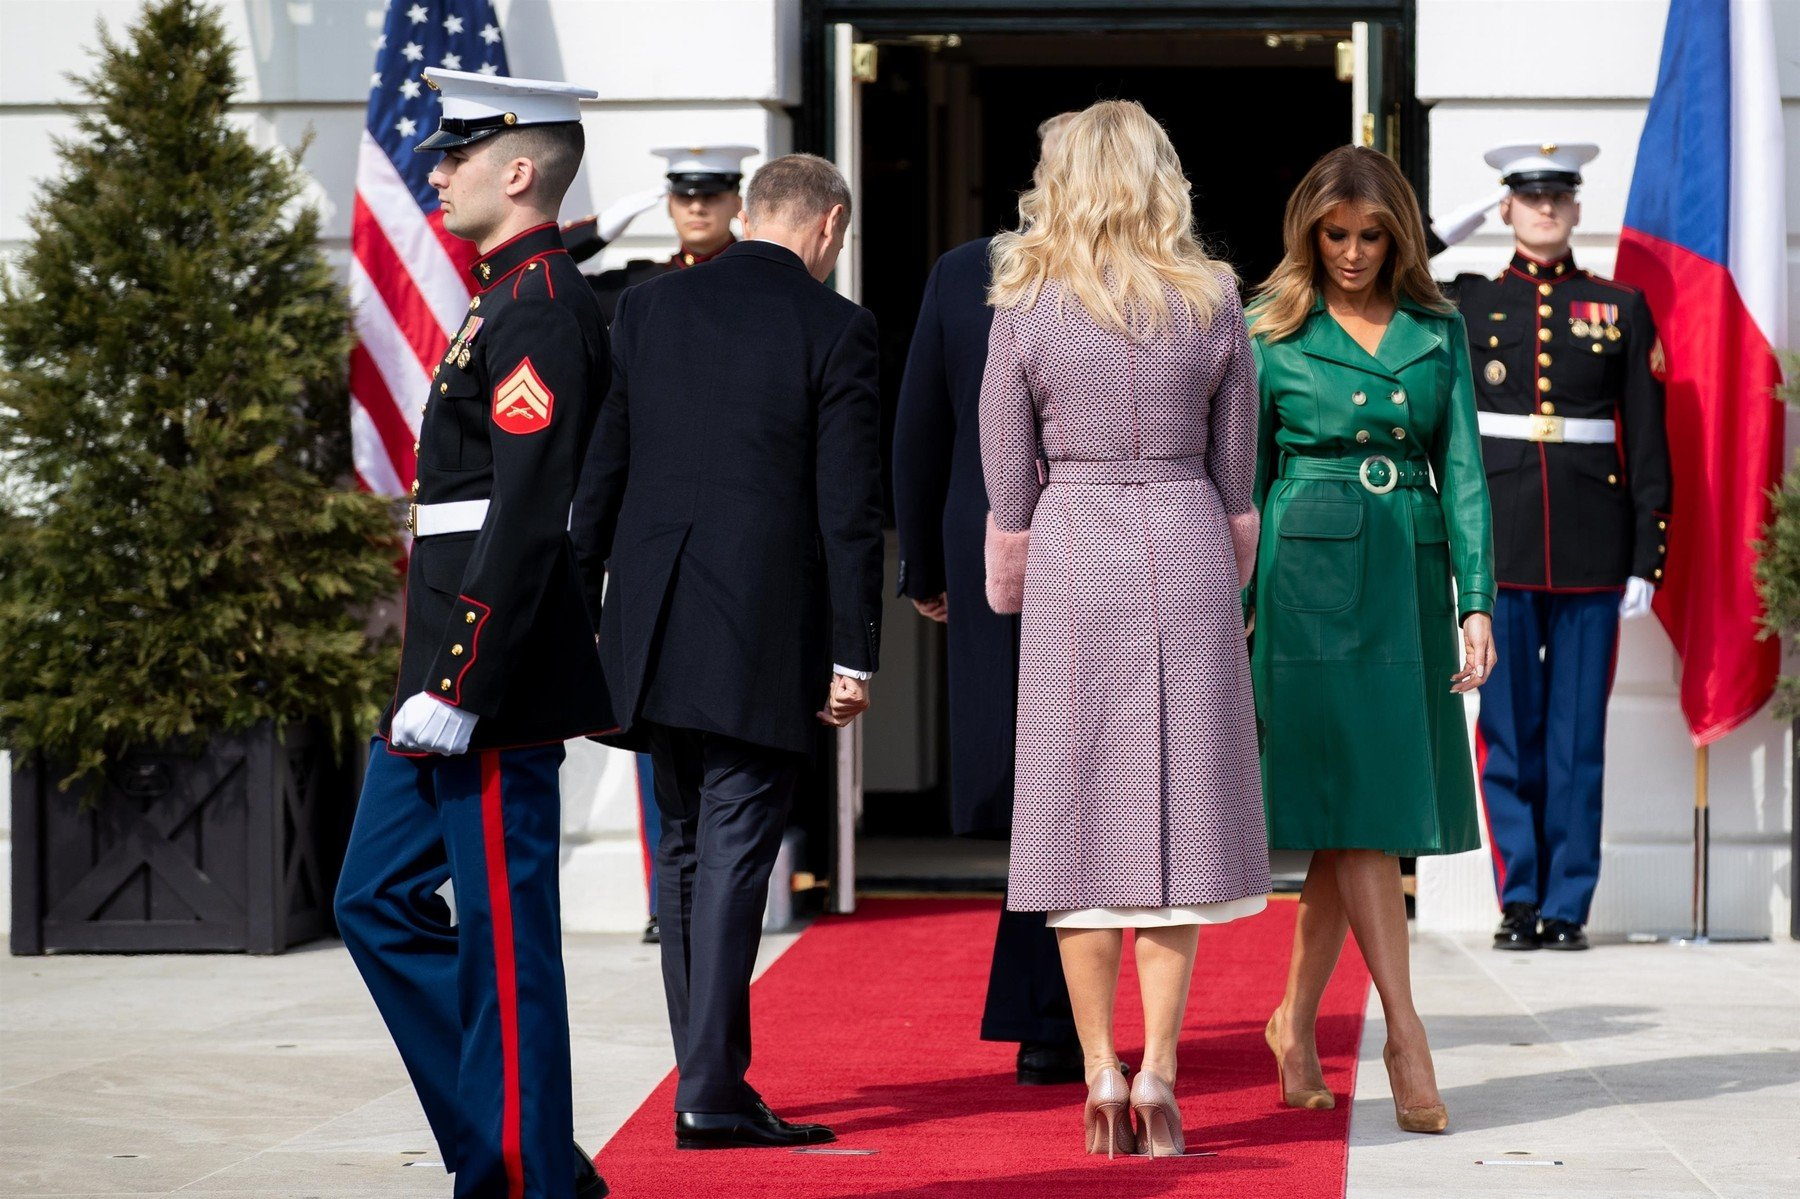 Washington, DC  - United States President Donald Trump and First Lady Melania Trump chats before welcoming Czech Republic Prime Minister Andrej Babiš and Mrs. Monika Babišová on the South Portico at White House in Washington, District of Columbia.  Pictured: Mrs. Monika Babisova, First Lady Melania Trump  BACKGRID USA 7 MARCH 2019, Image: 417941058, License: Rights-managed, Restrictions: , Model Release: no, Credit line: Profimedia, Backgrid USA